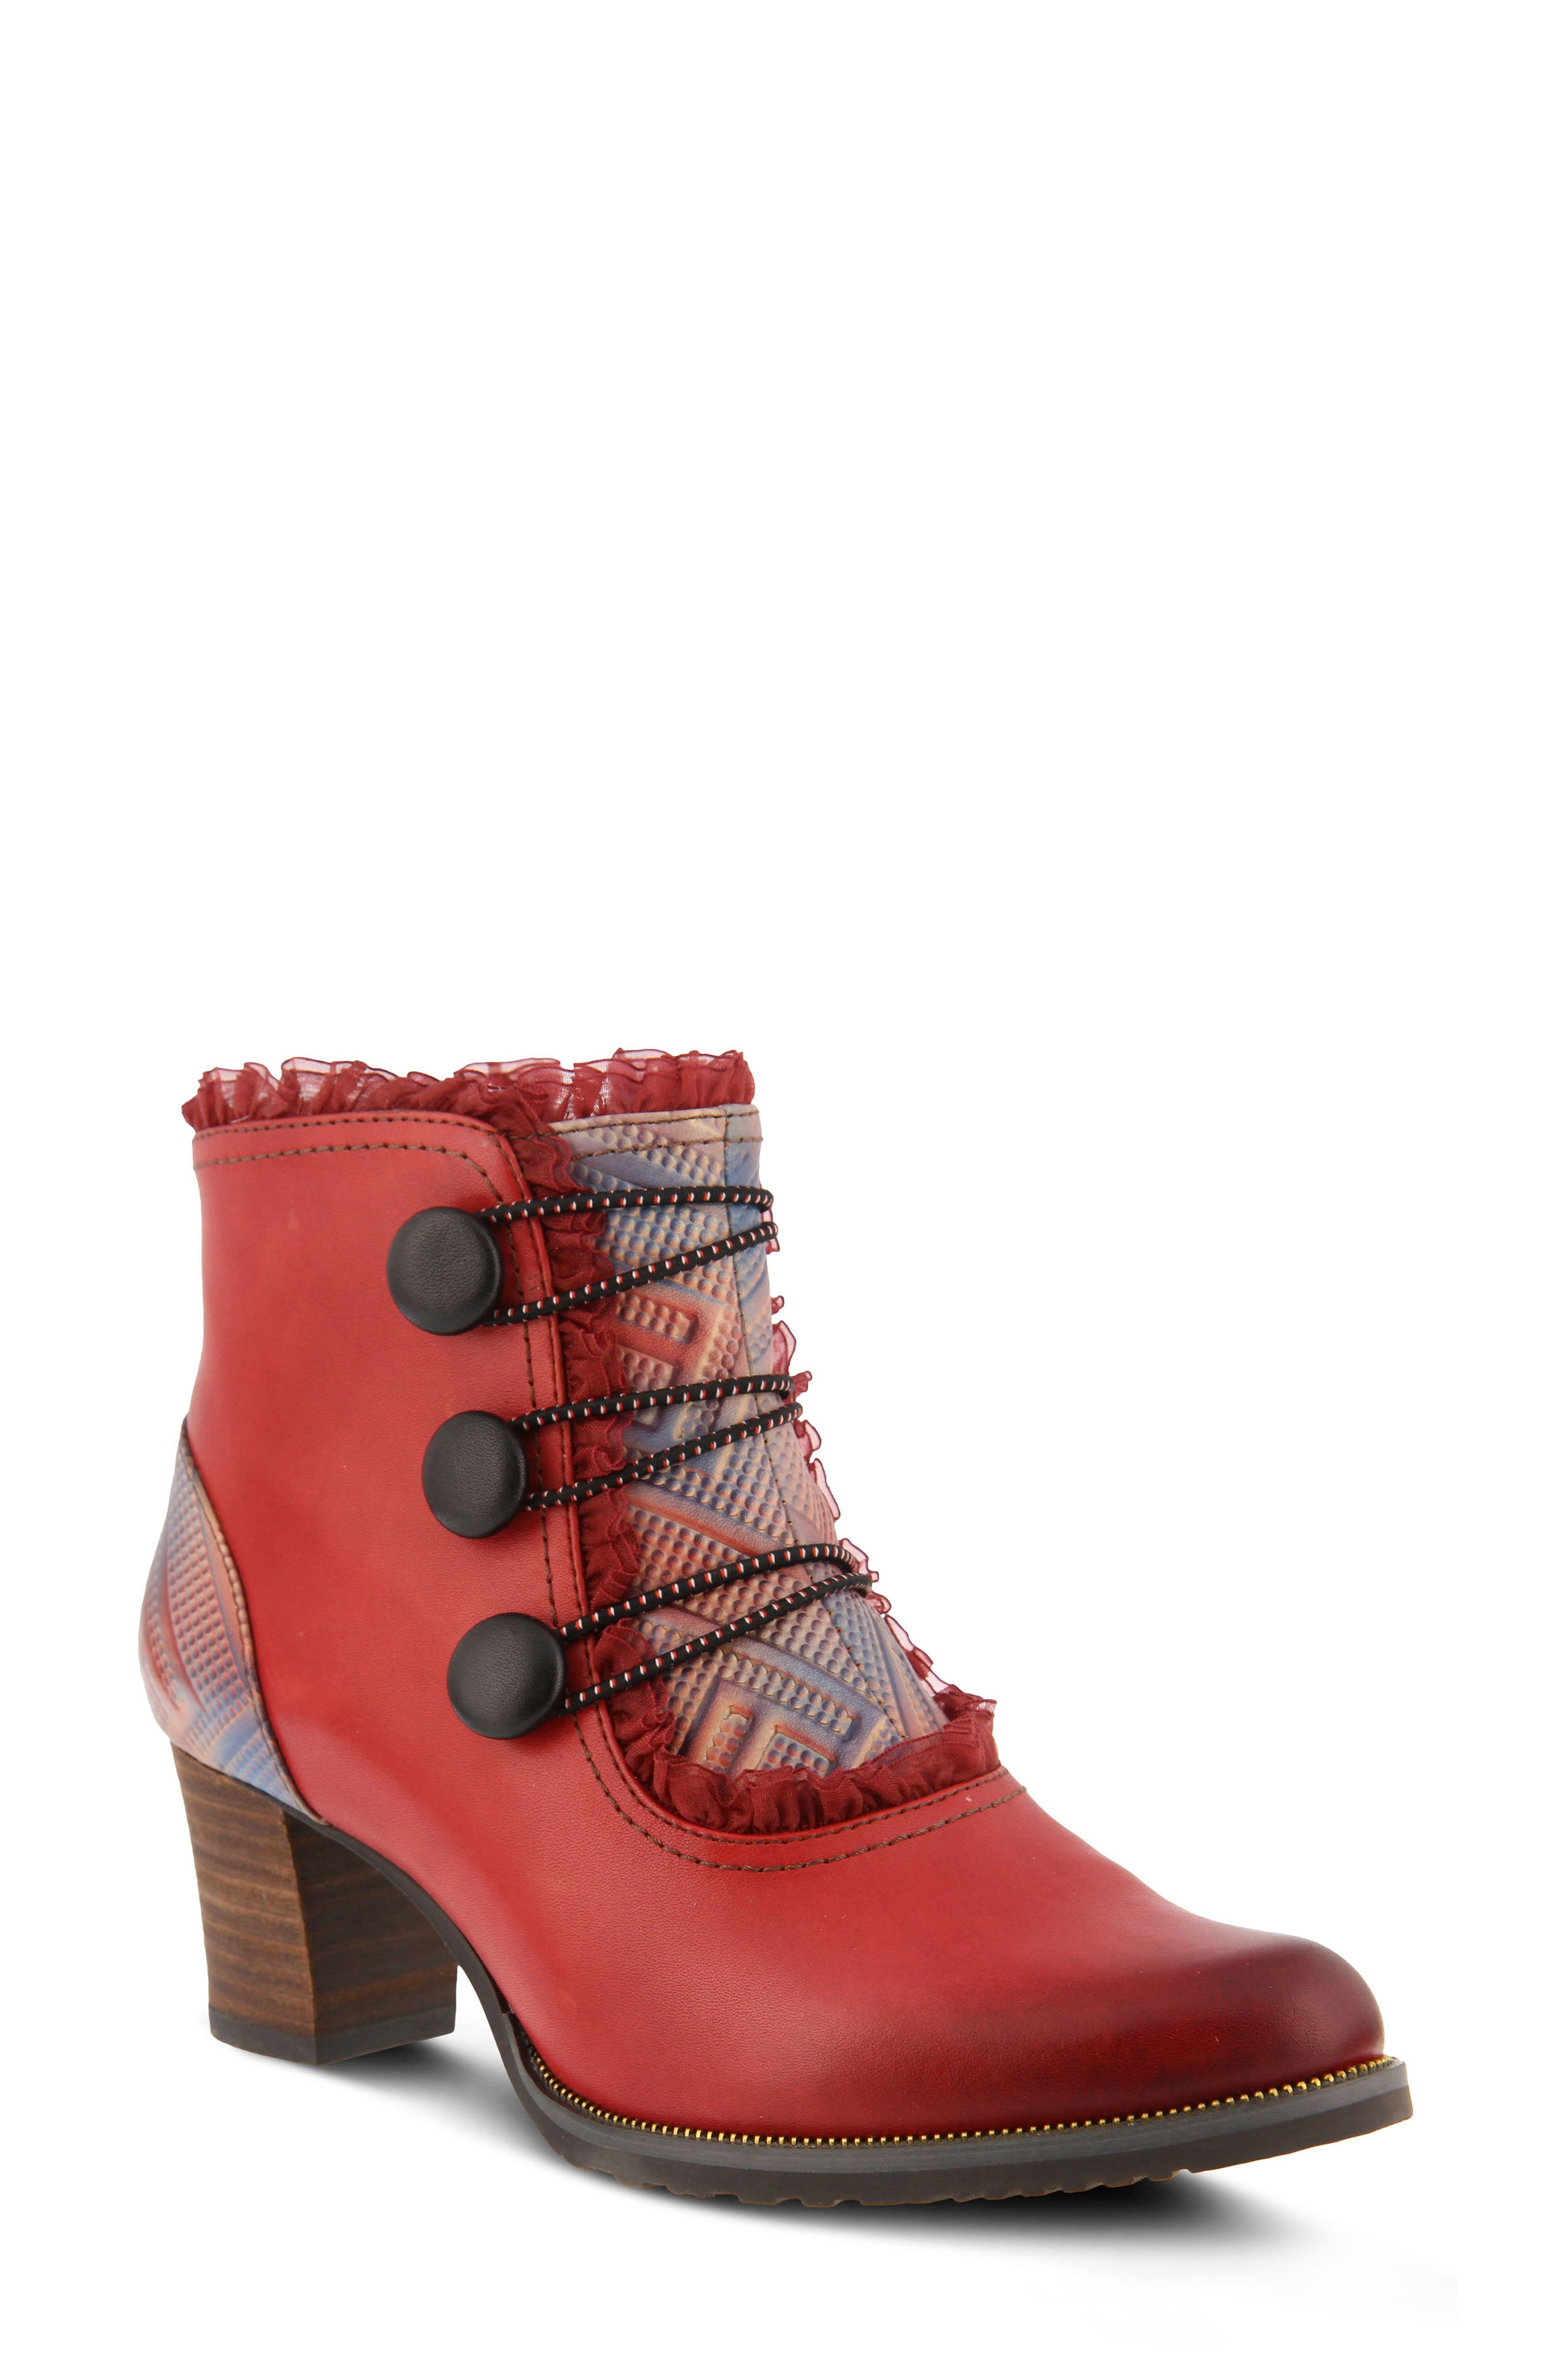 L'Artiste Conchita Boot,                             Main thumbnail 1, color,                             Red Leather